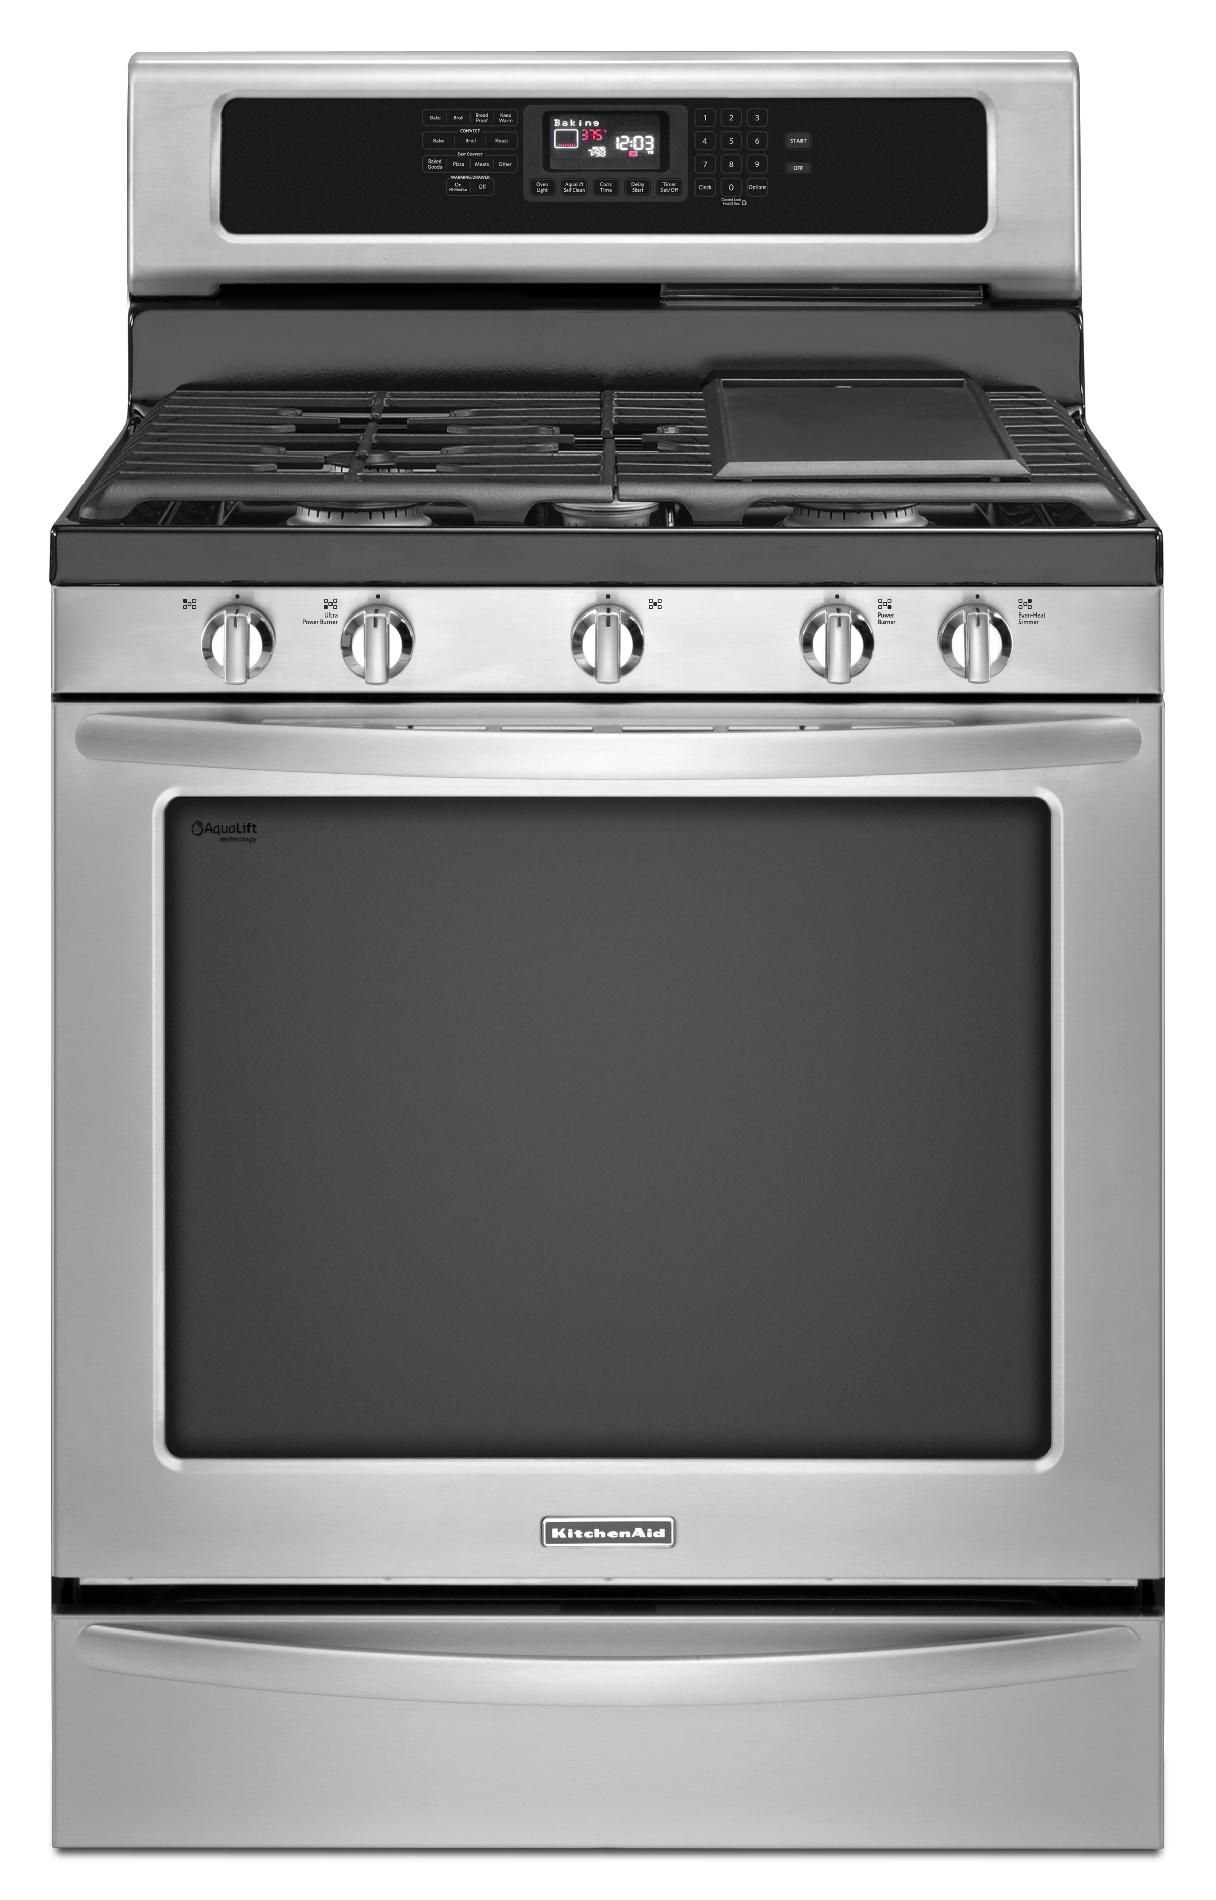 5-8-cu-ft-Freestanding-Gas-Range-w-Warming-Drawer-Stainless-Steel